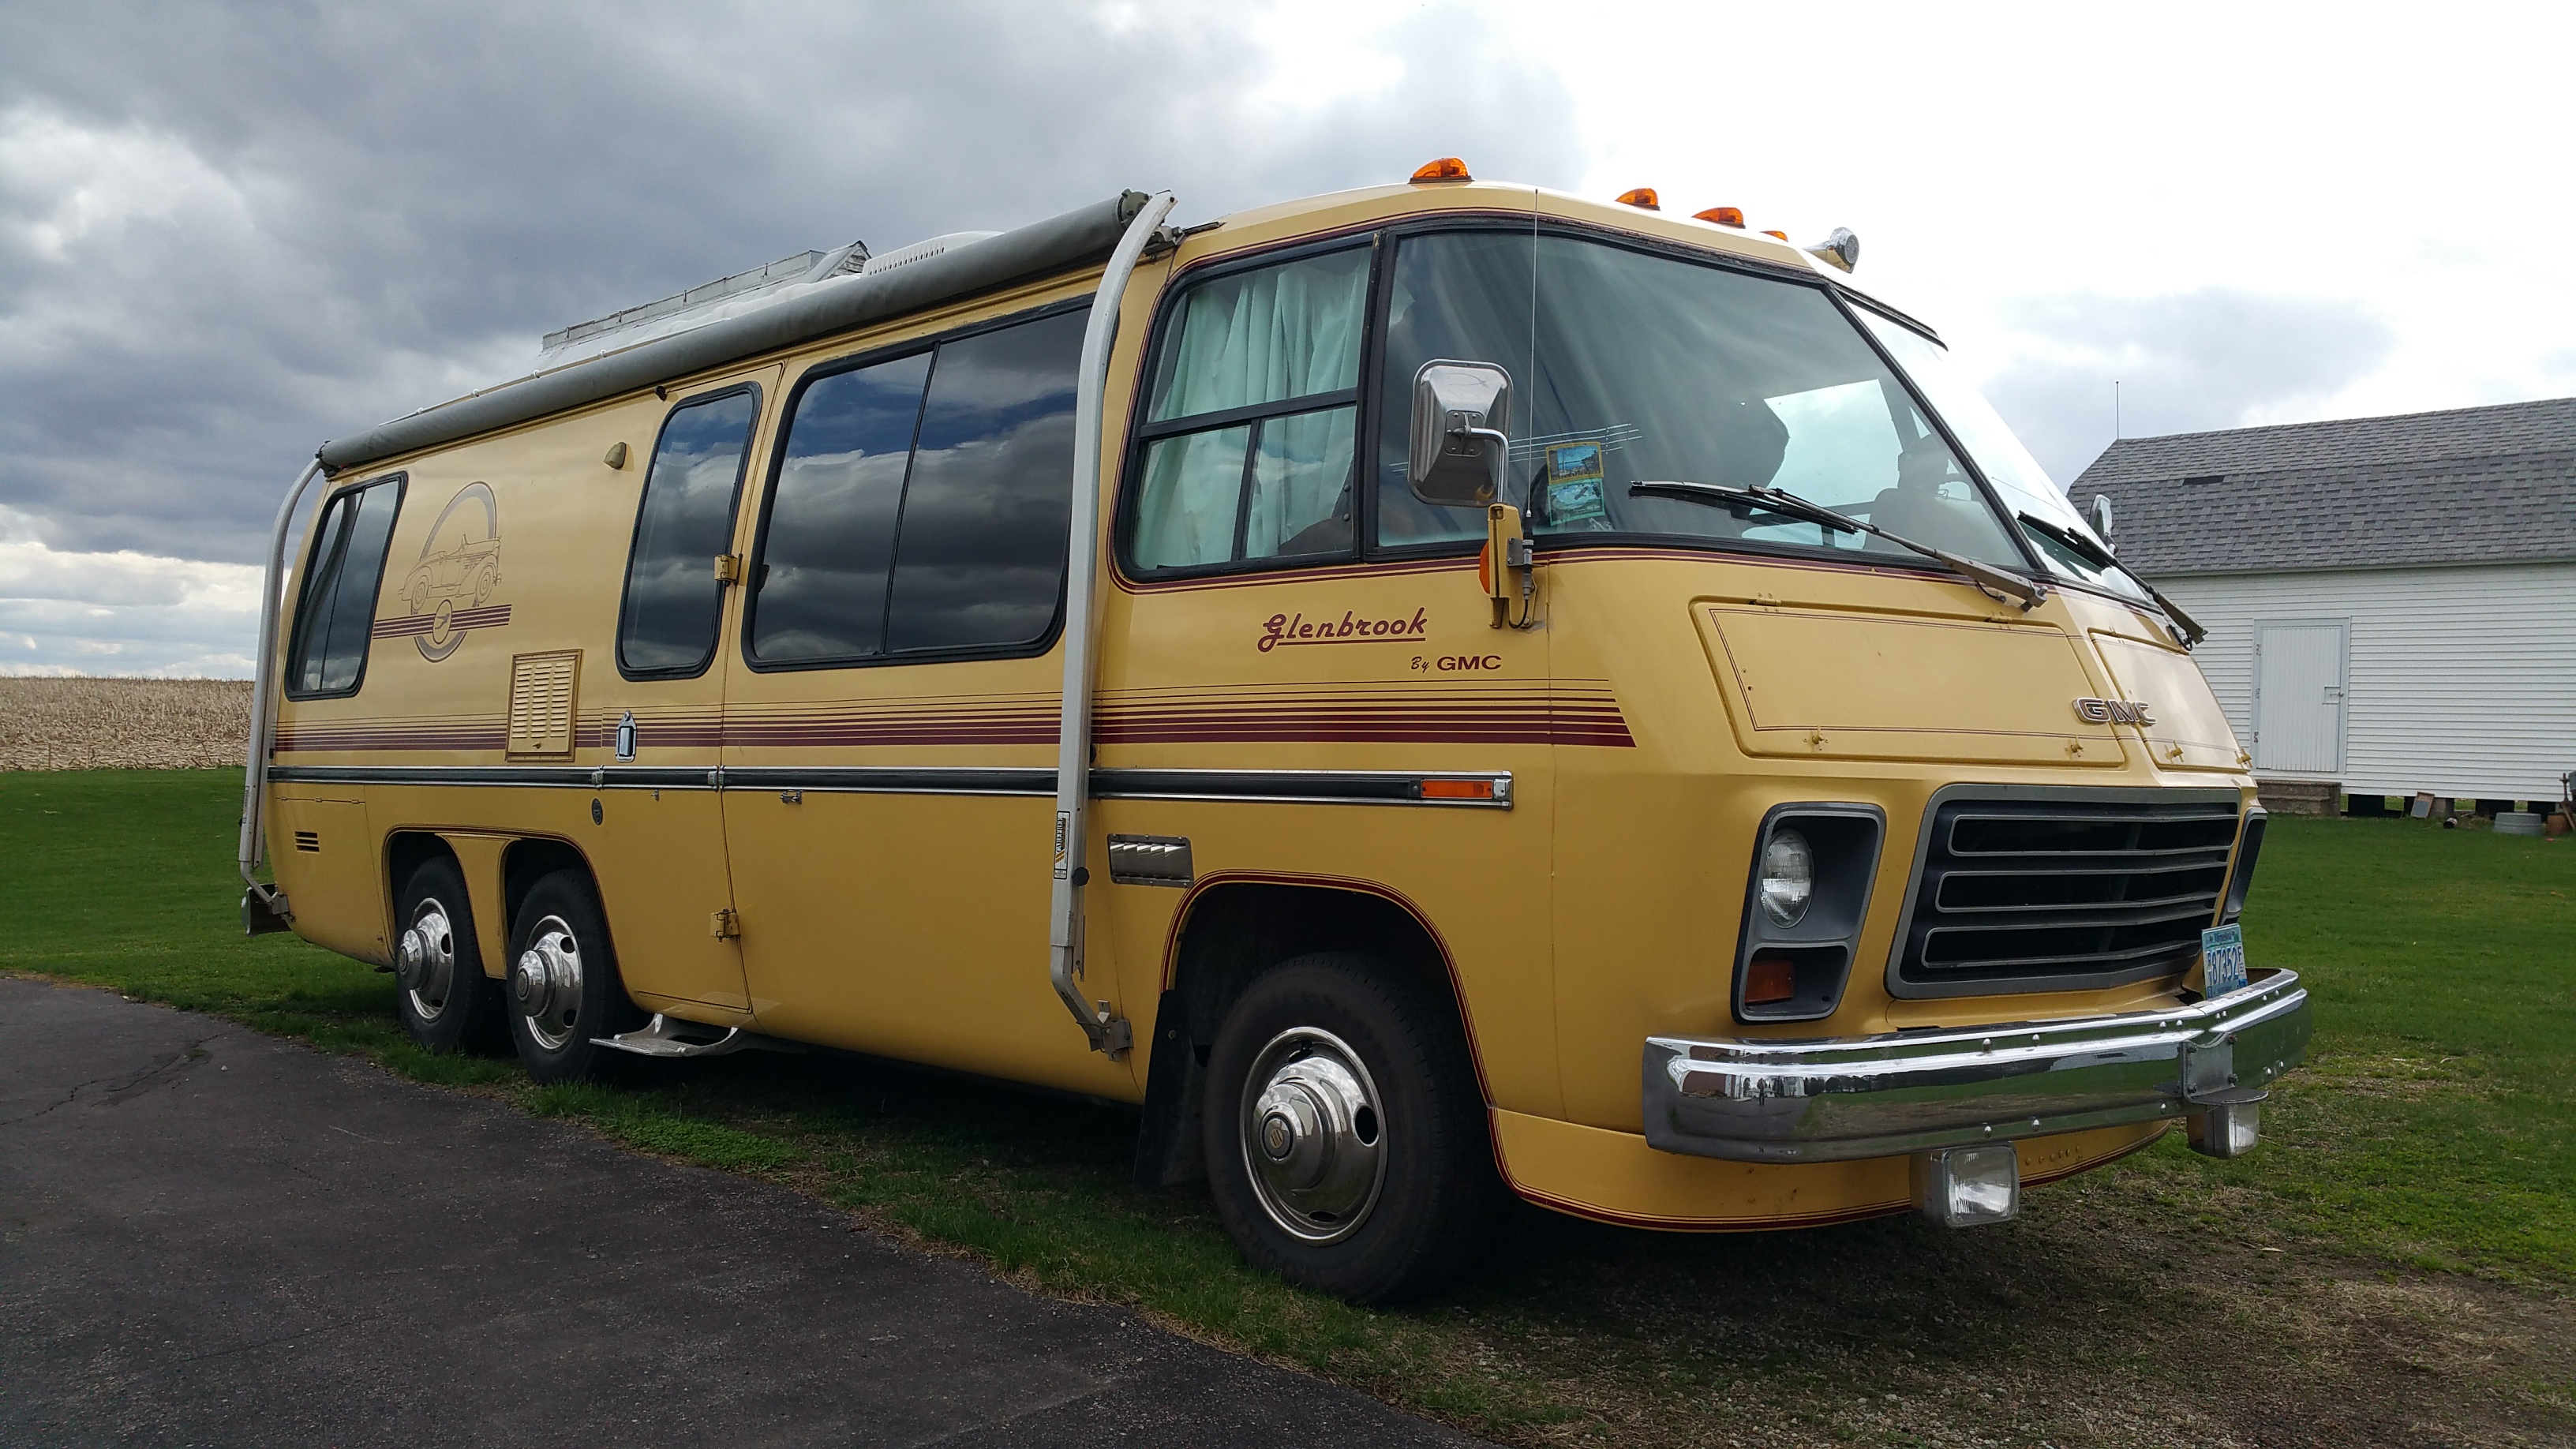 Gmc motorhomes for sale for Gmc motor homes for sale